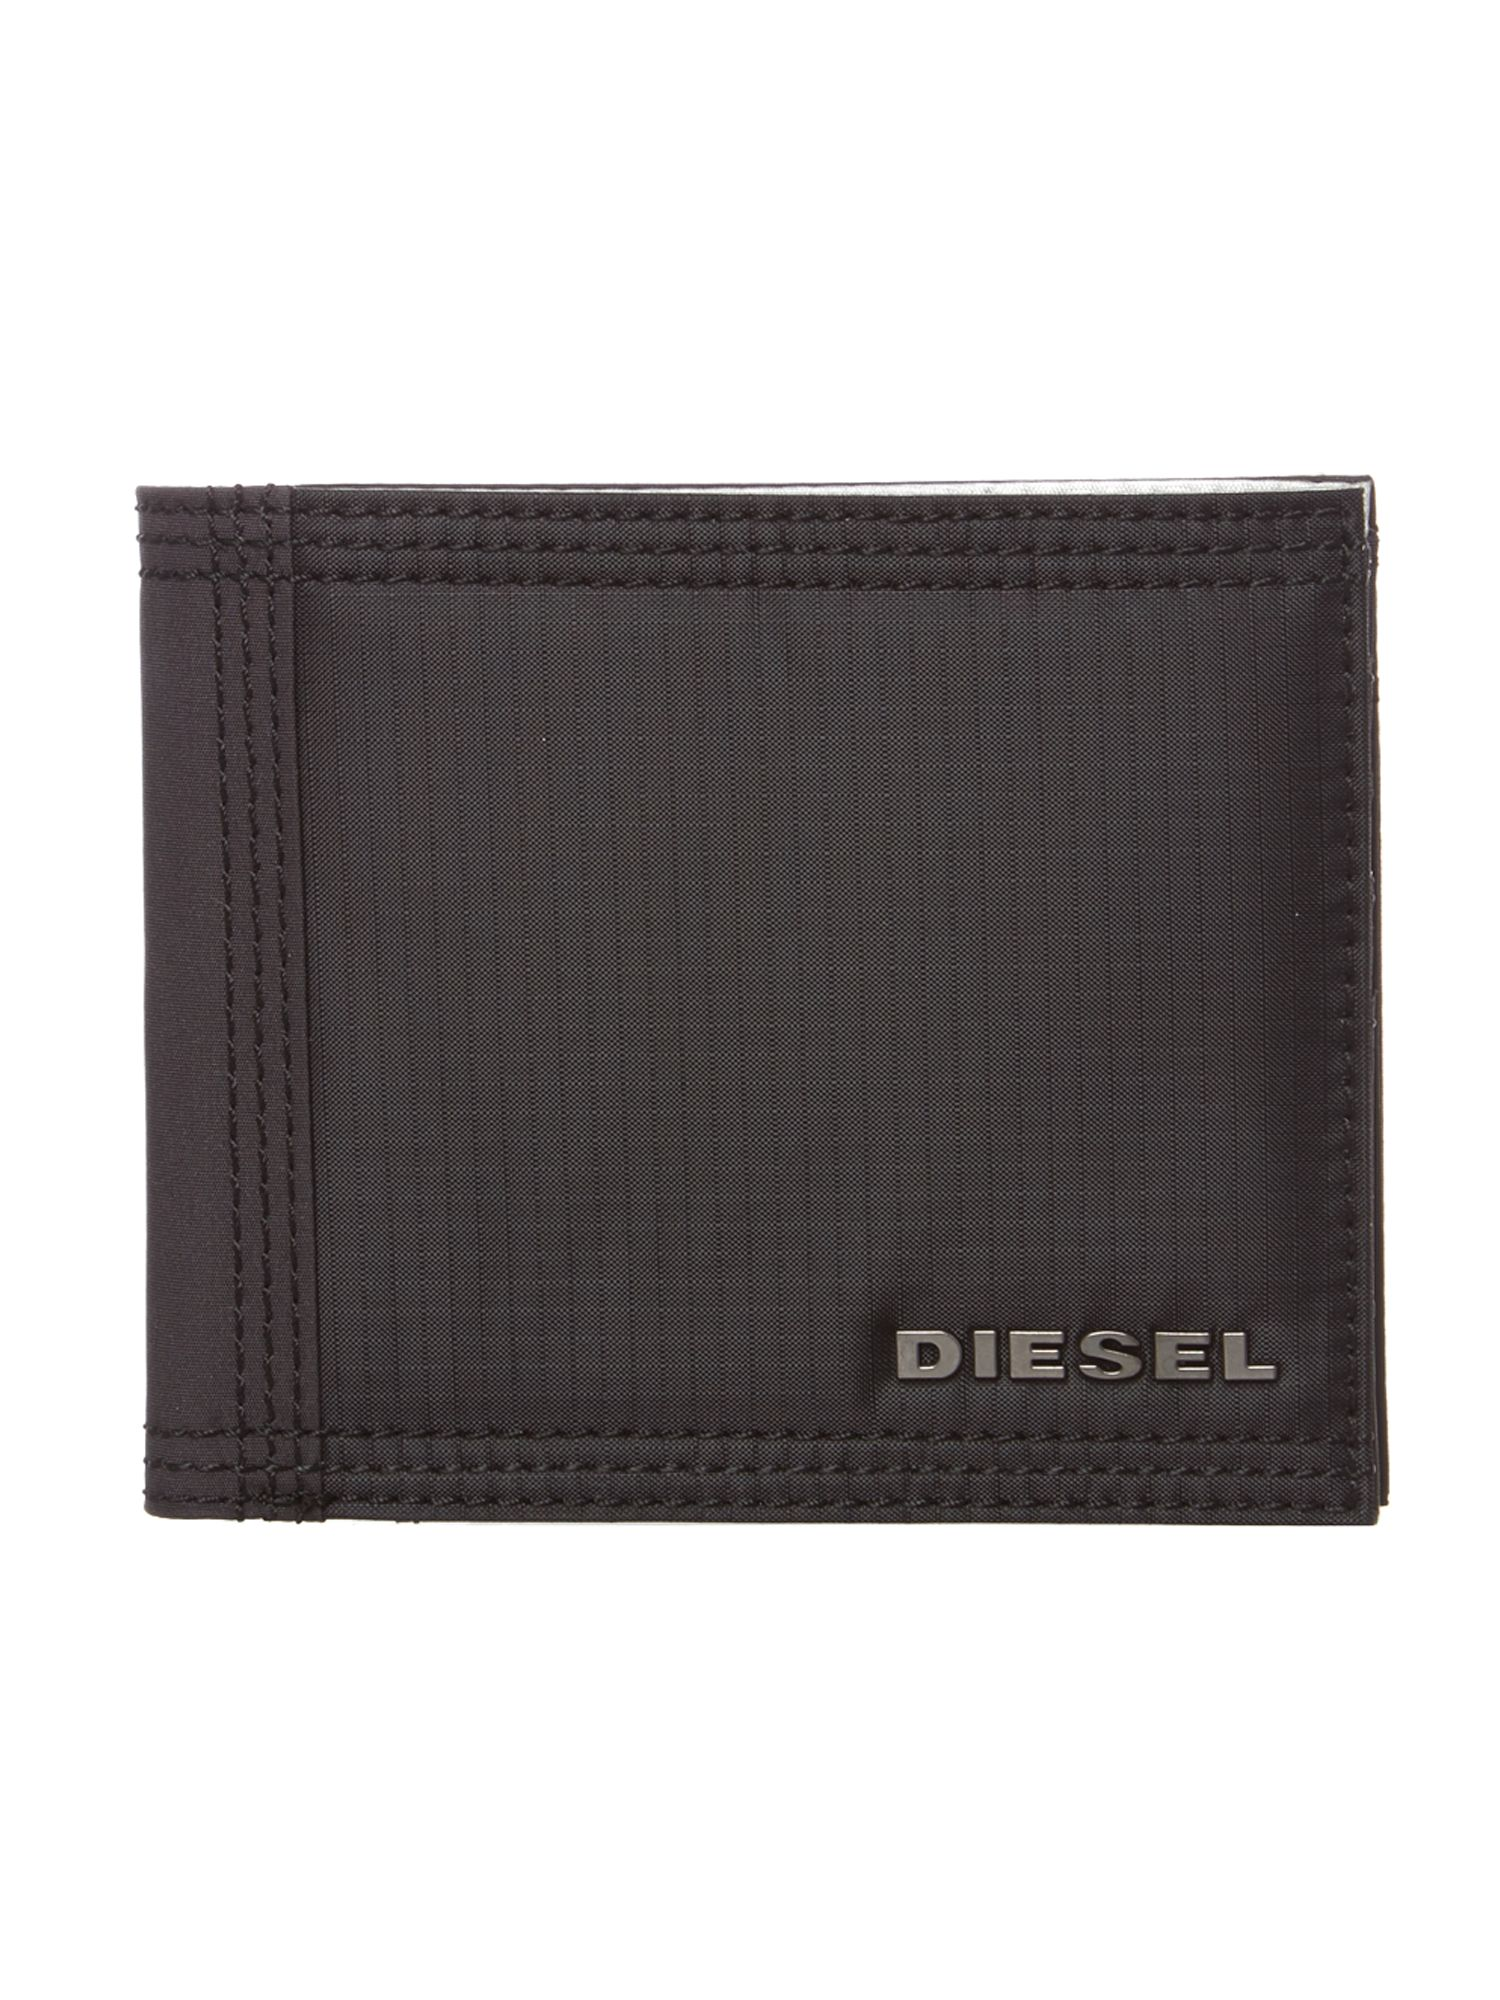 Nylon billfold output wallet